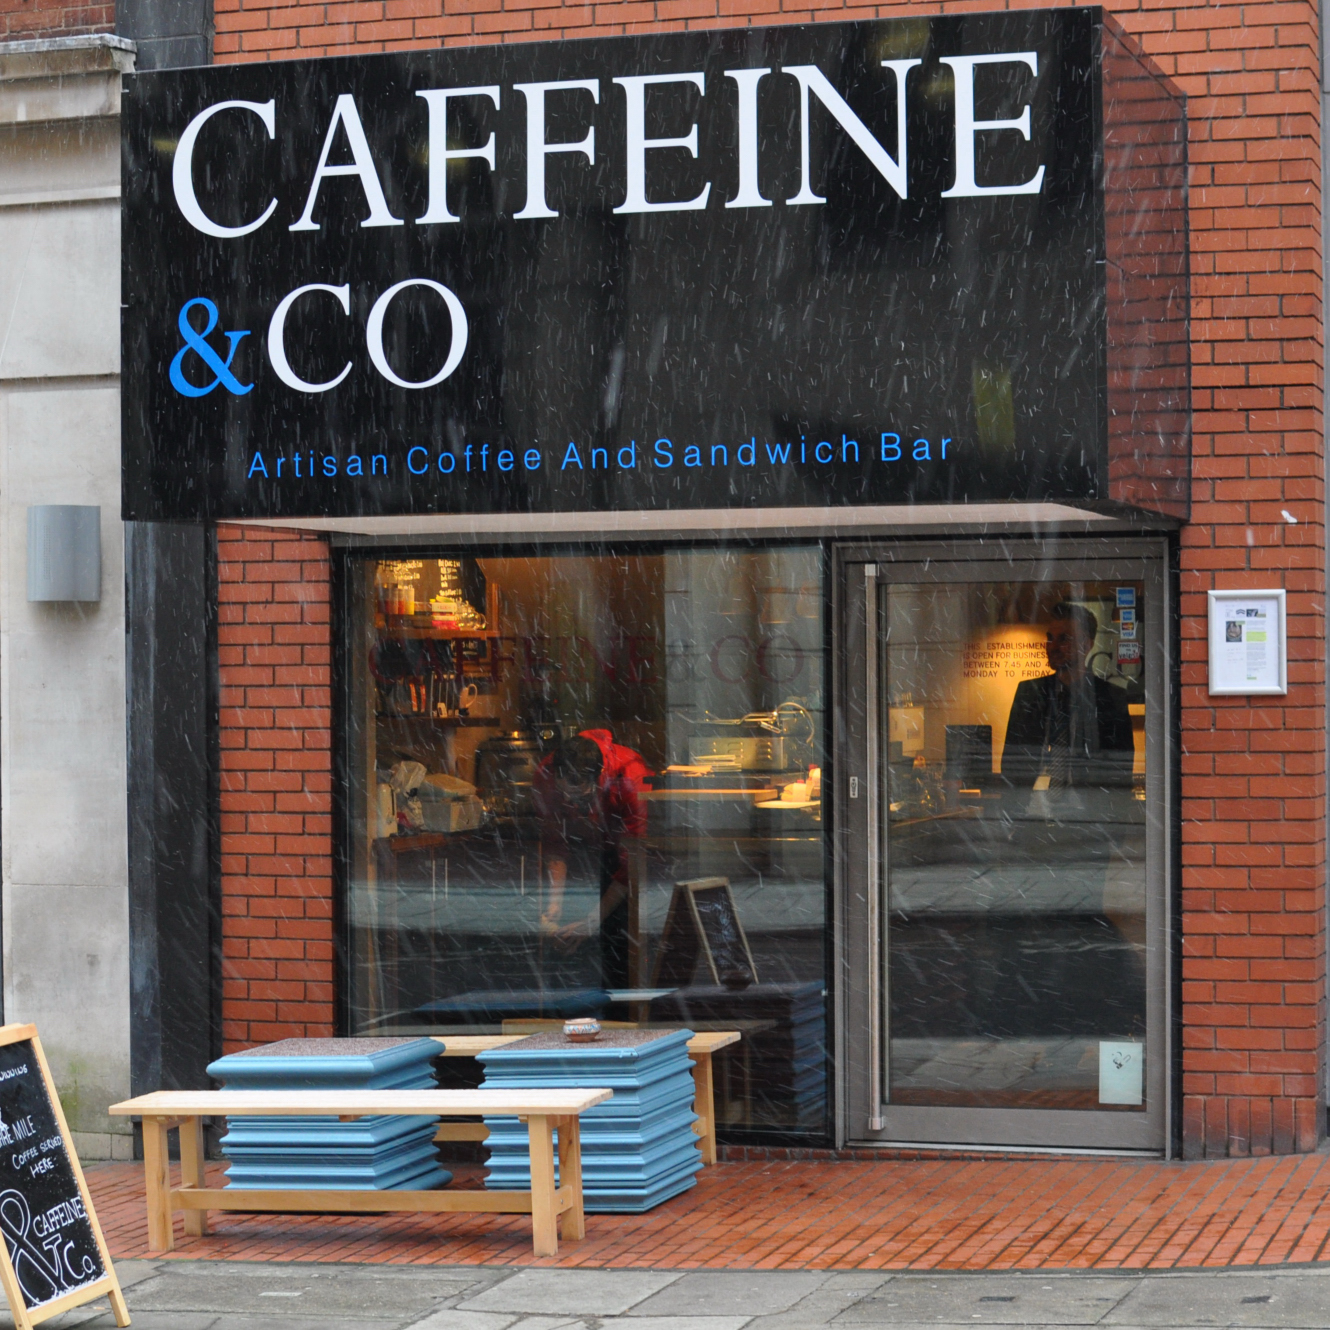 The store front of Caffeine & Co, on Manchester's St James's Square, where the most is made of what little frontage there is with a huge logo!